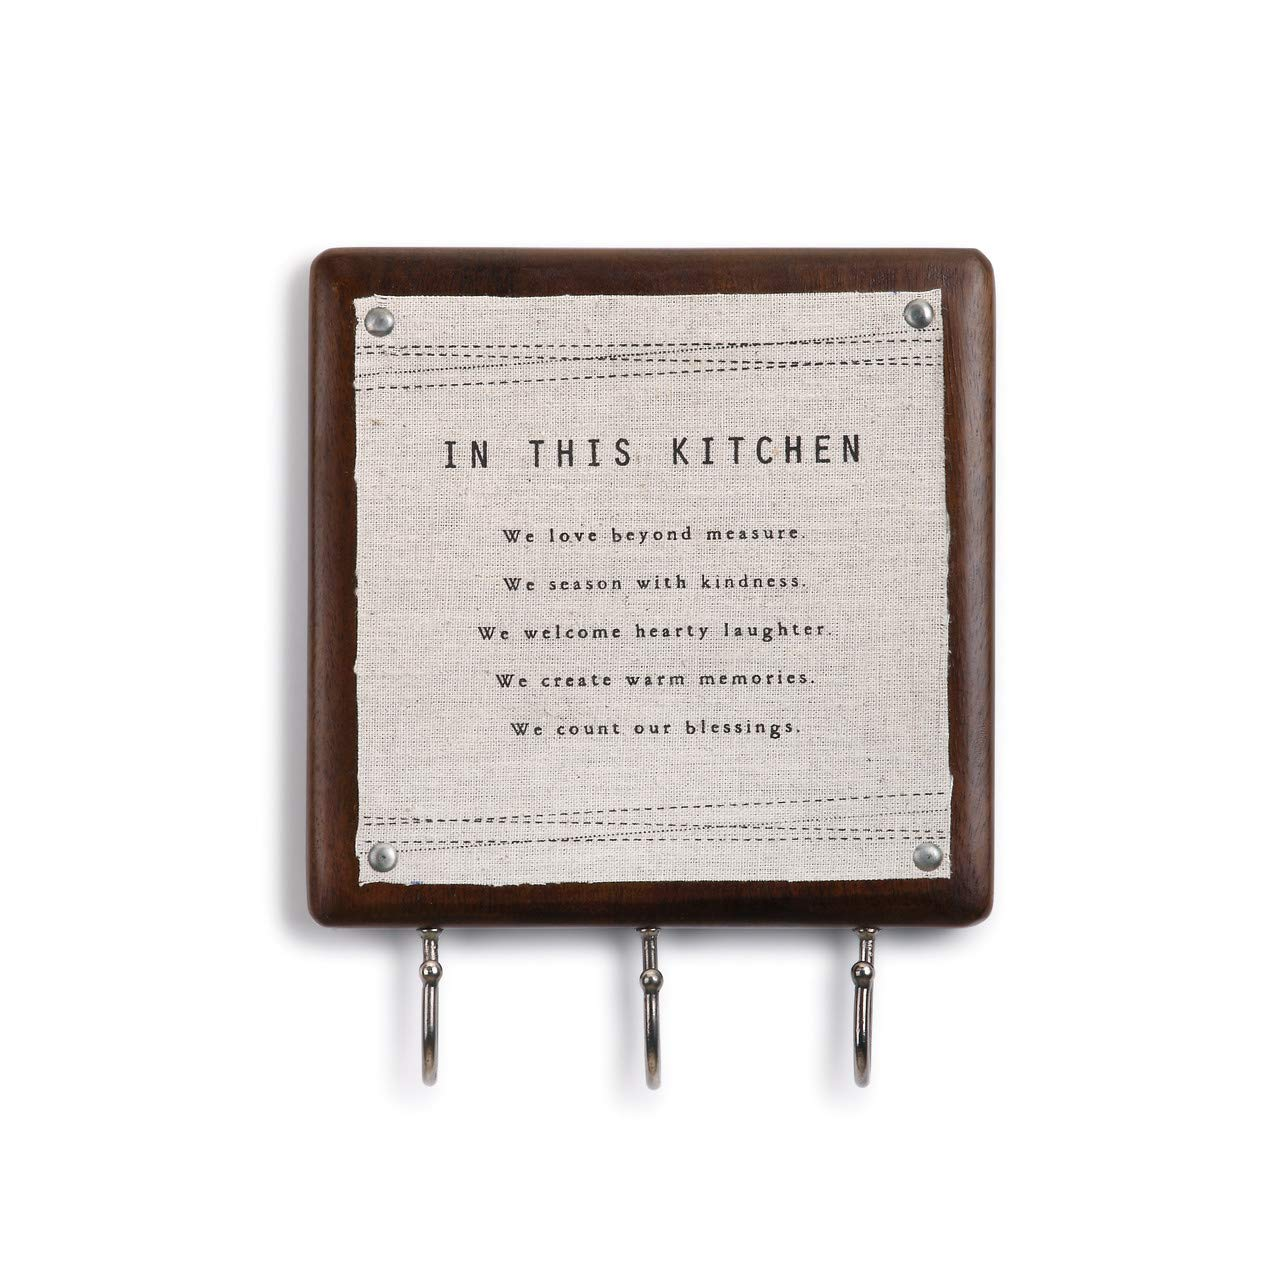 DEMDACO in This Kitchen Wood and Canvas 7 x 8.5 Wall Sign Plaque with Hooks